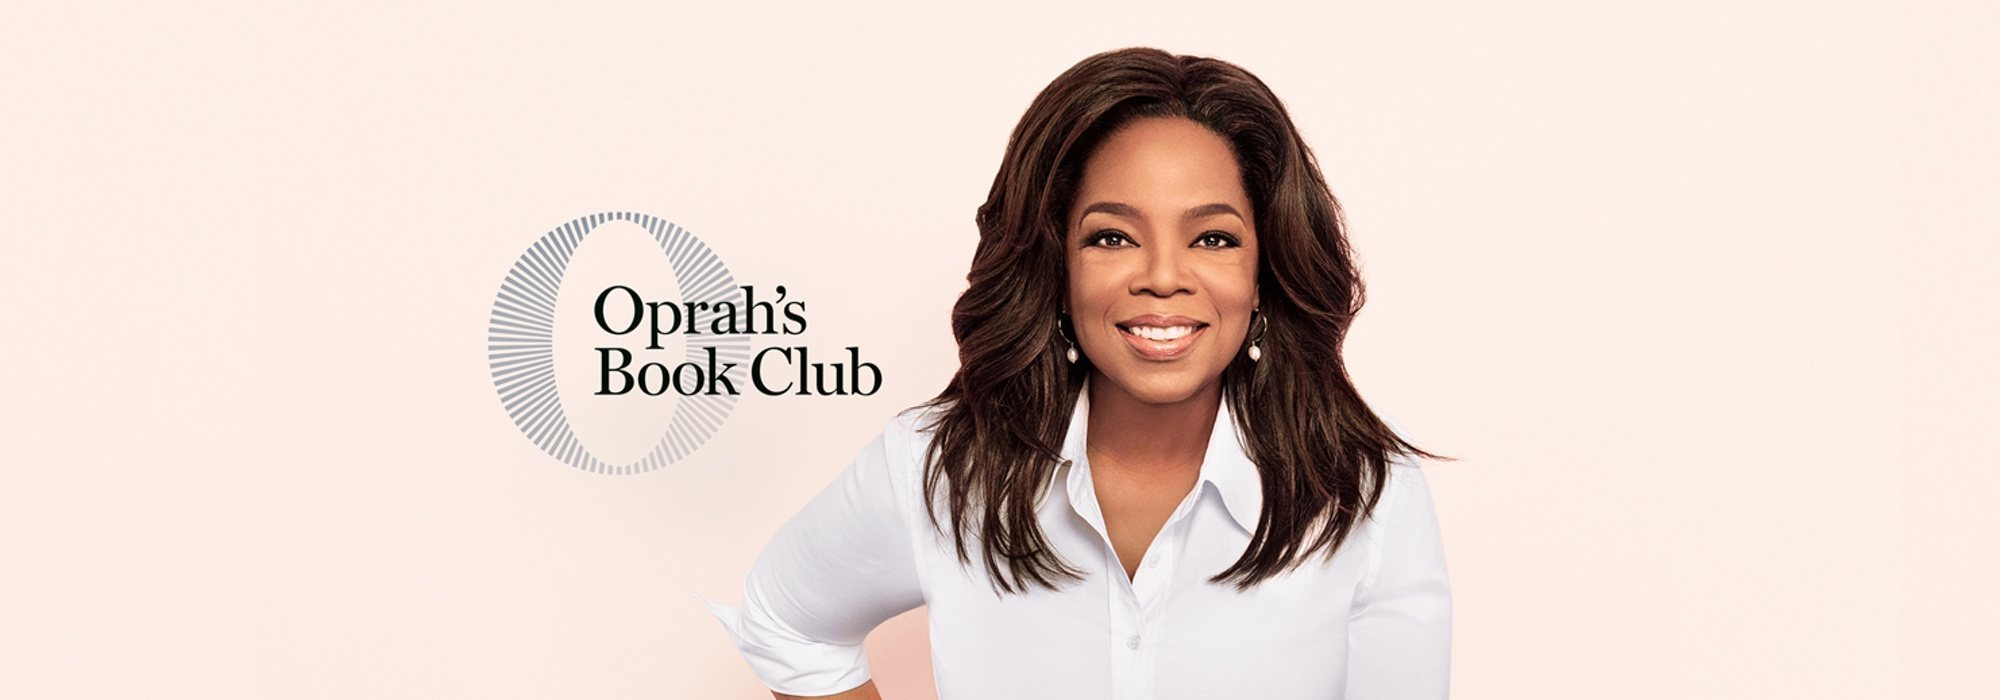 Oprah's Book Club